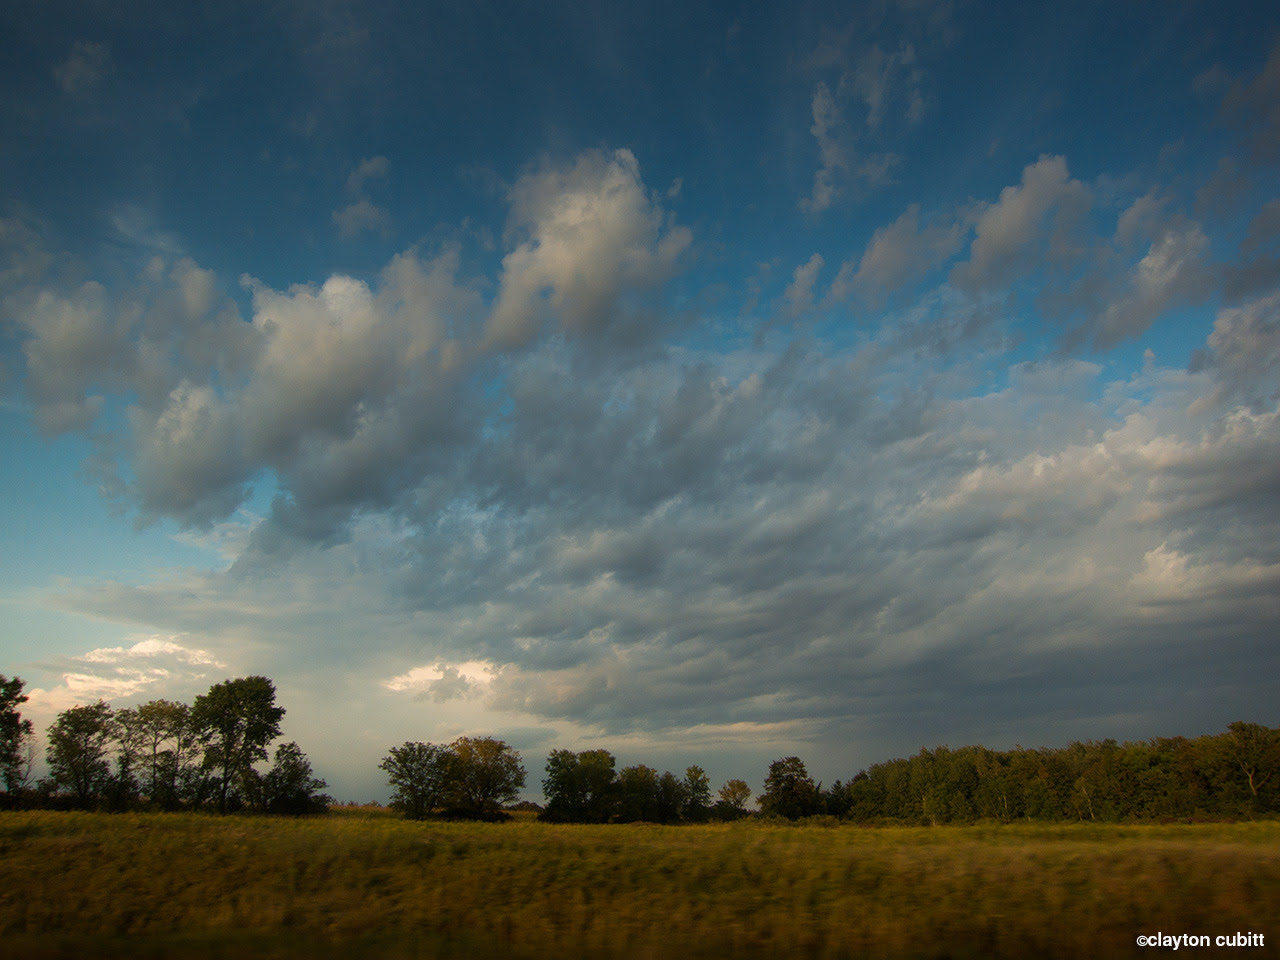 Clouds over farmland and trees, northern Minnesota   (2706)